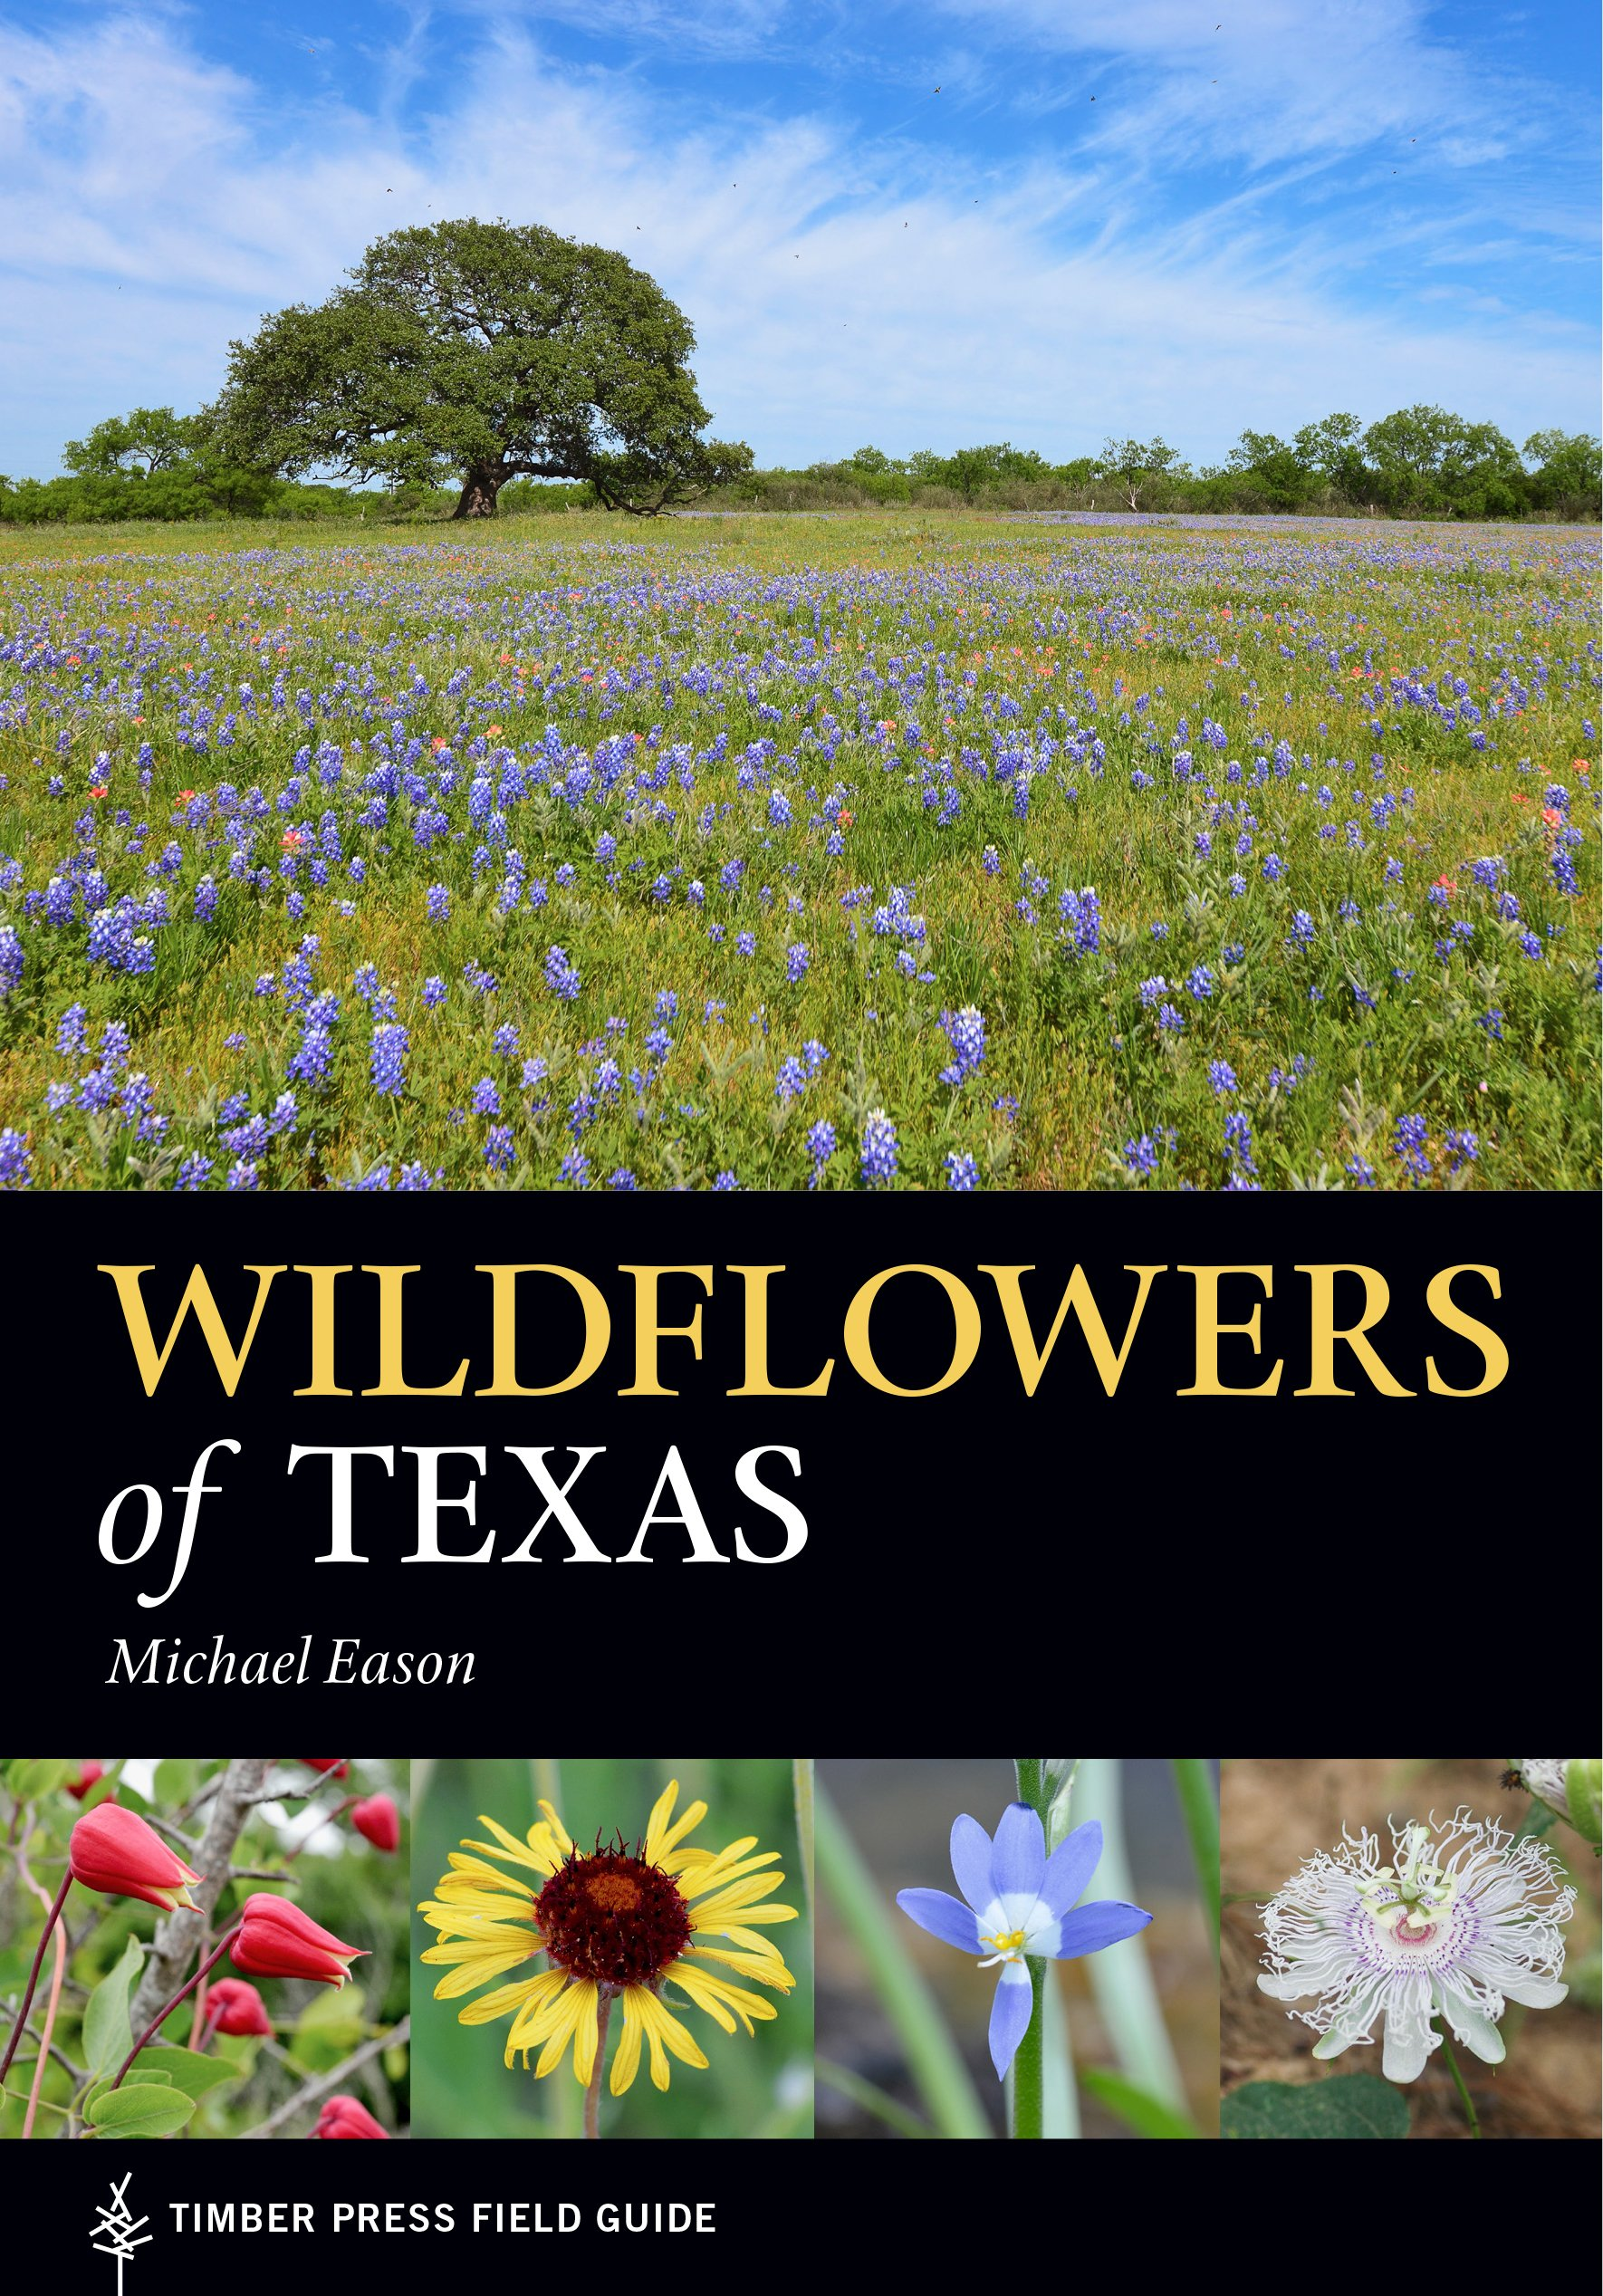 Wildflowers of Texas (A Timber Press Field Guide): Michael Eason:  9781604696462: Amazon.com: Books